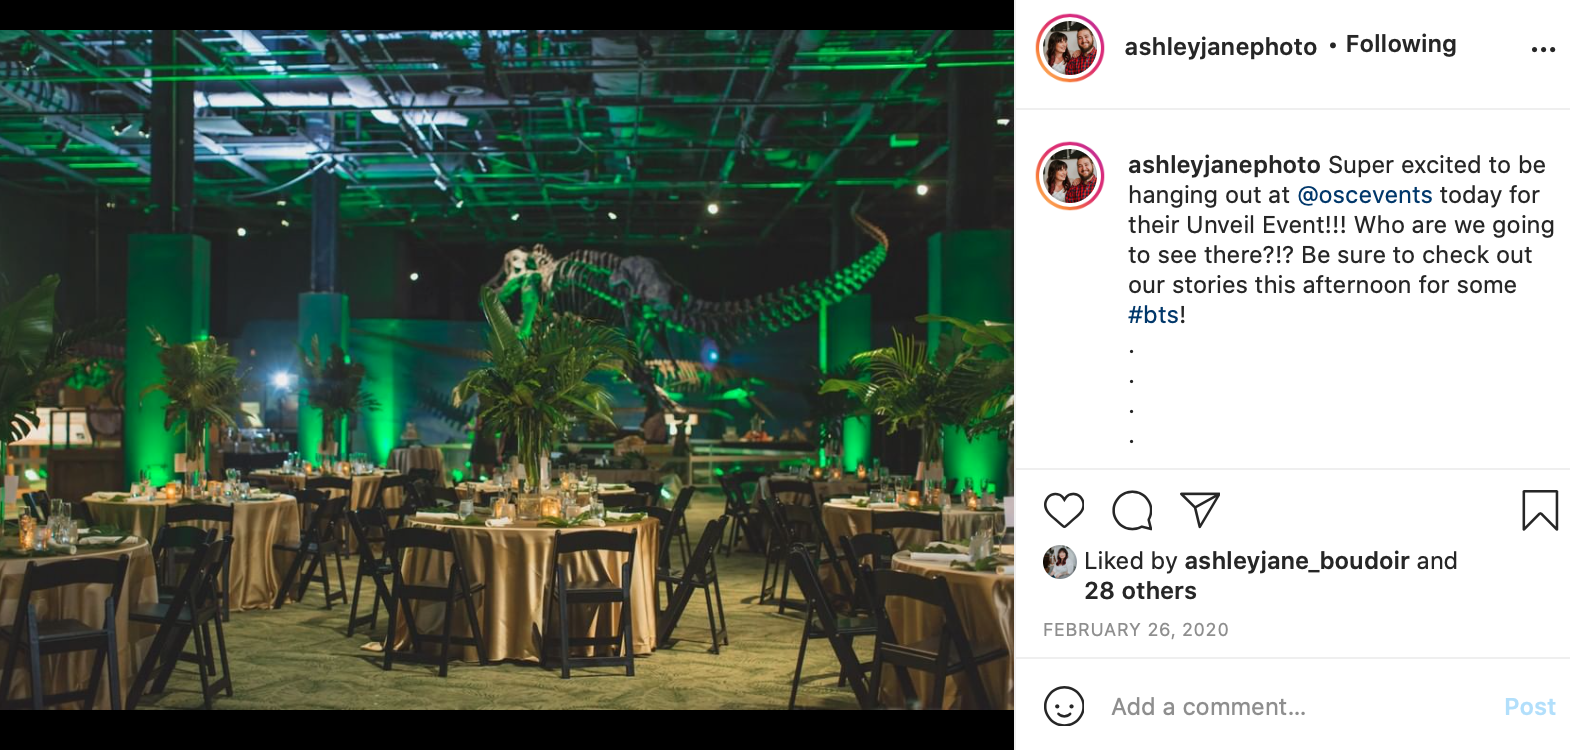 A vendor promotes a wedding event that they're attending on Instagram.